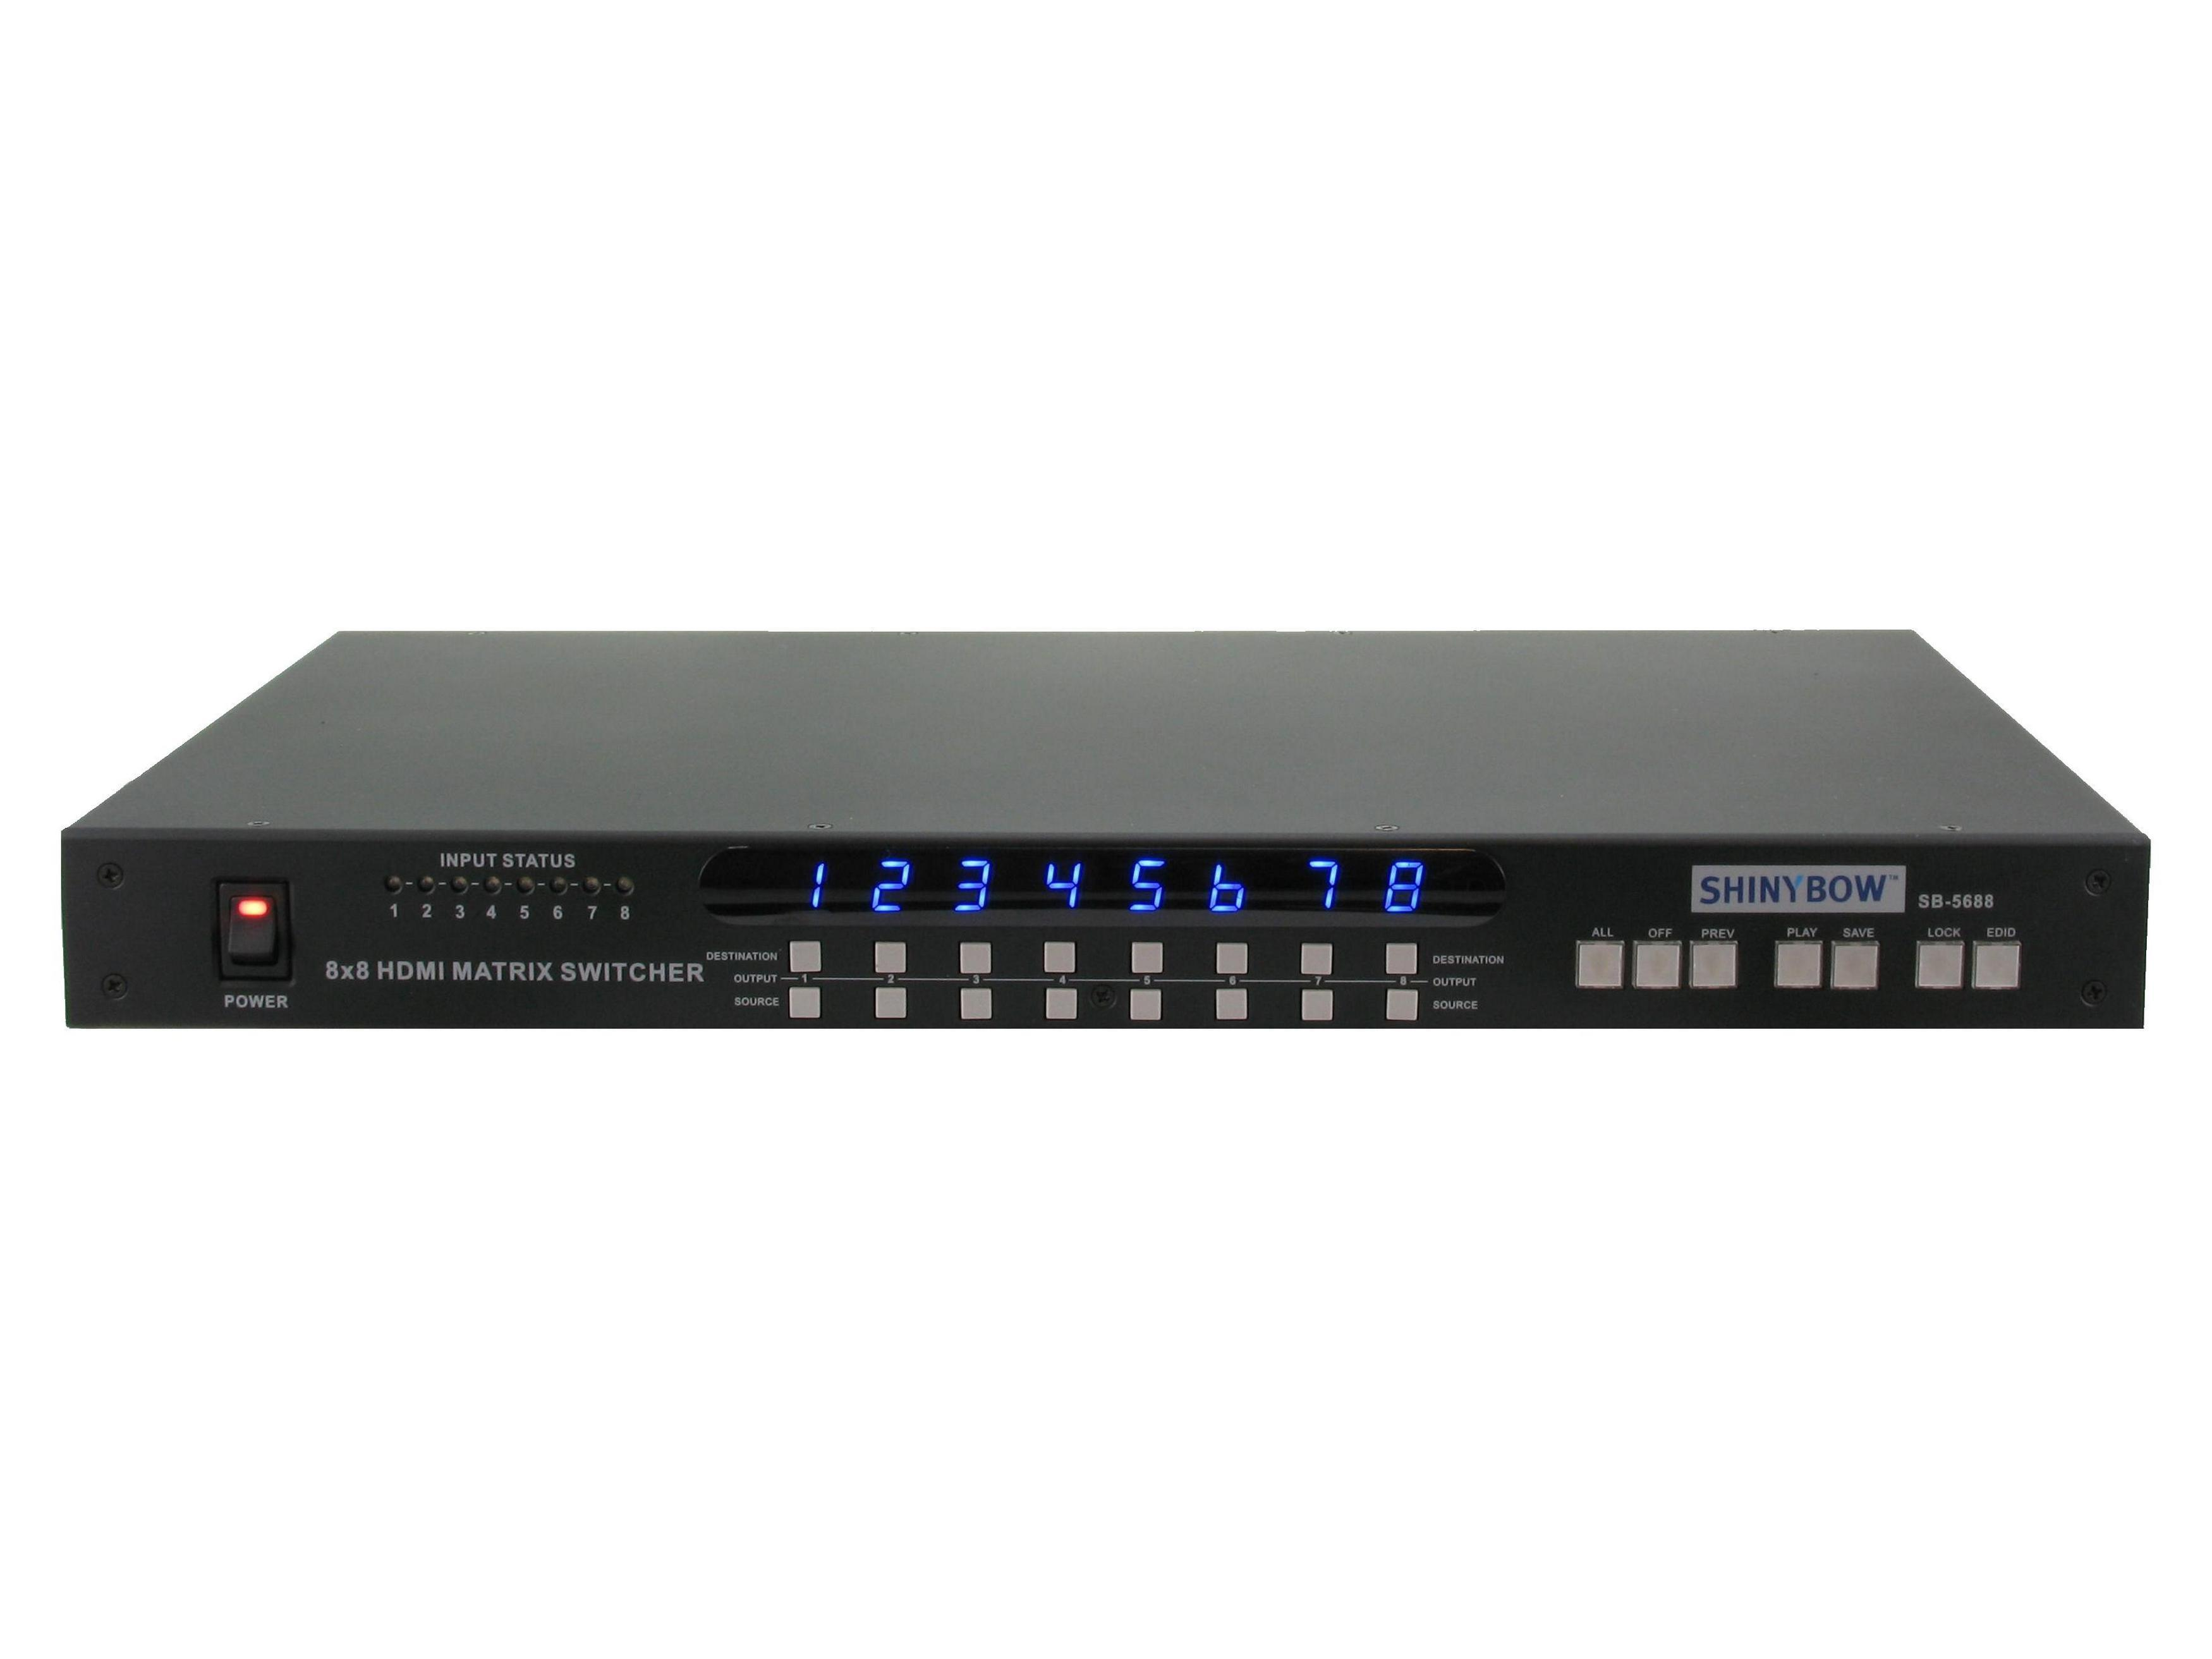 Shinybow SB-5688 8x8 HDMI MATRIX SWITCHER